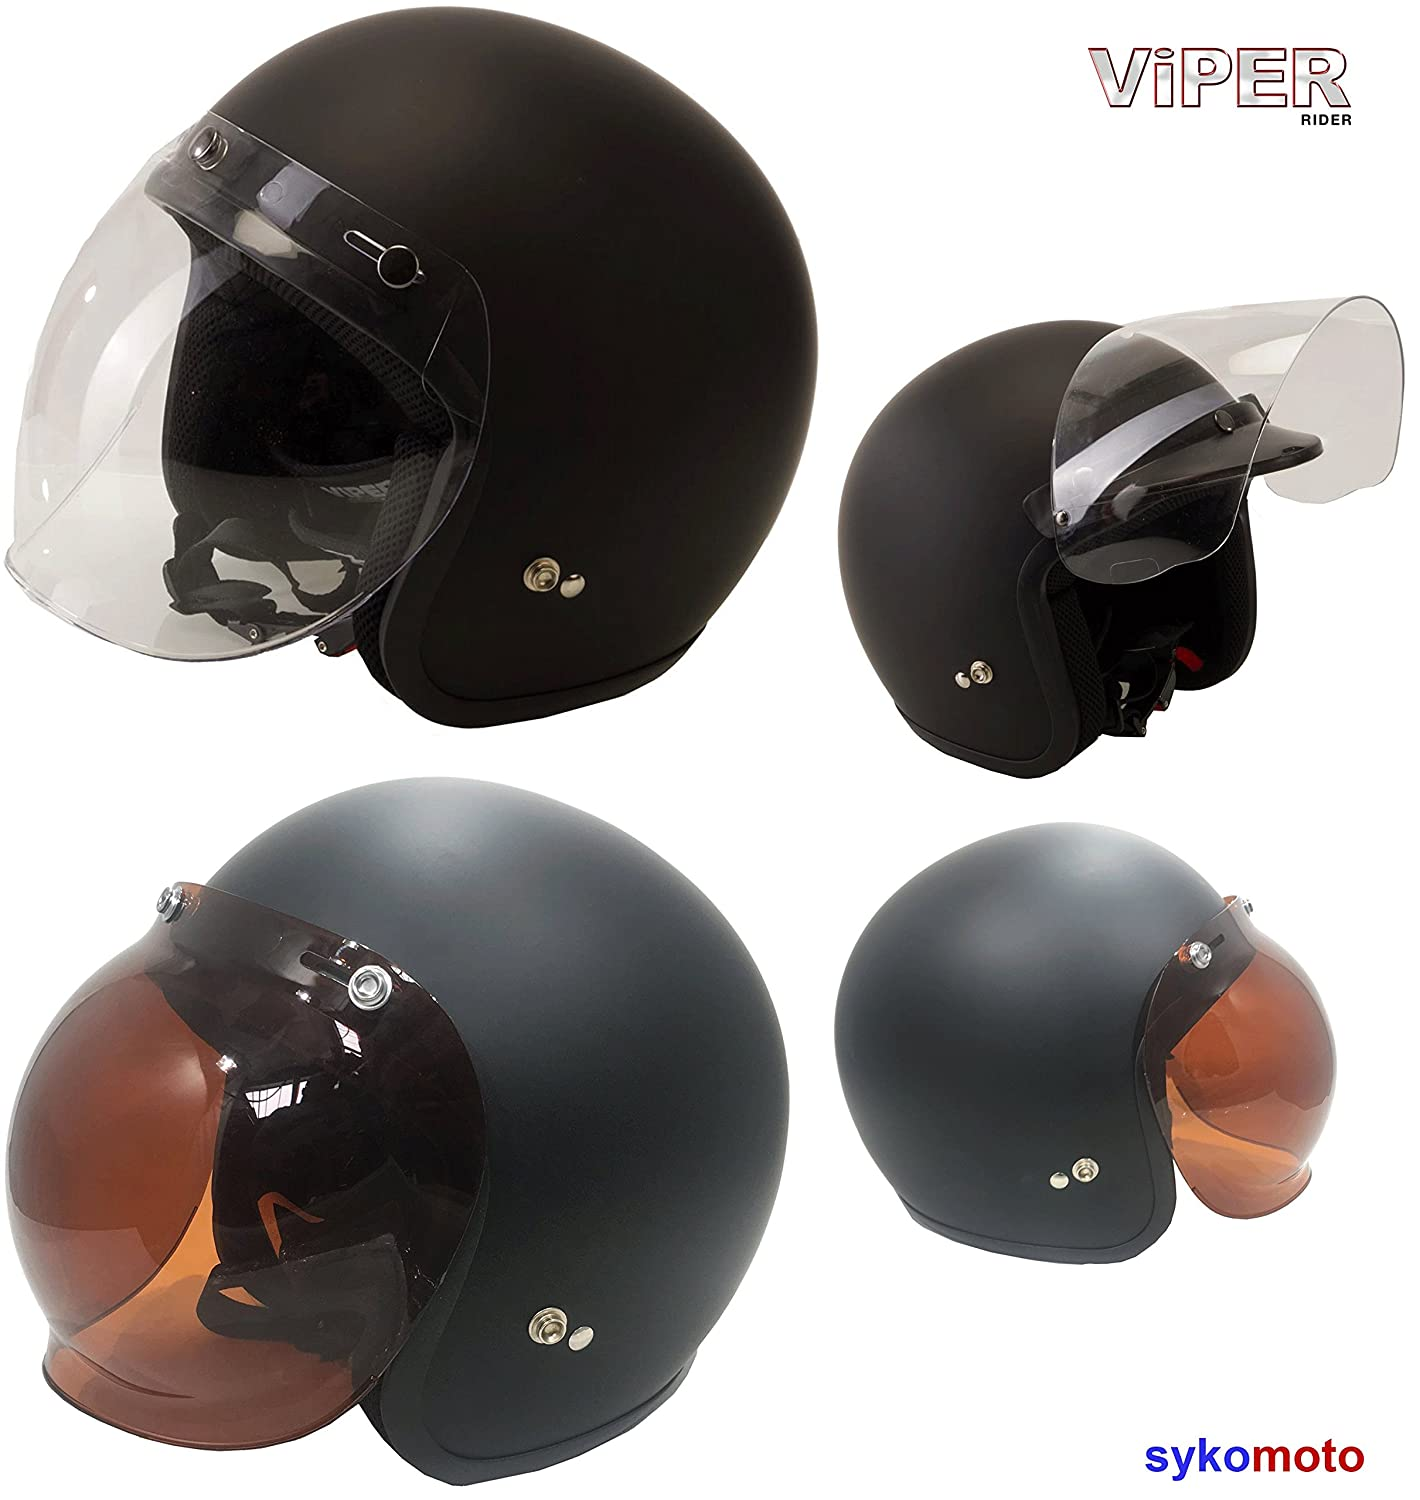 VISOR FOR OPEN FACE CUSTOM CHOPPER HELMET VIPER RS V06, RS 16, RS 05, RS 04 PEAK AMBER CLEAR REPLACEMENT ECE ROAD LEGAL BUBBLE VISOR ONLY (TRANSPARENT/CLEAR) MOTOHART VIPRS04